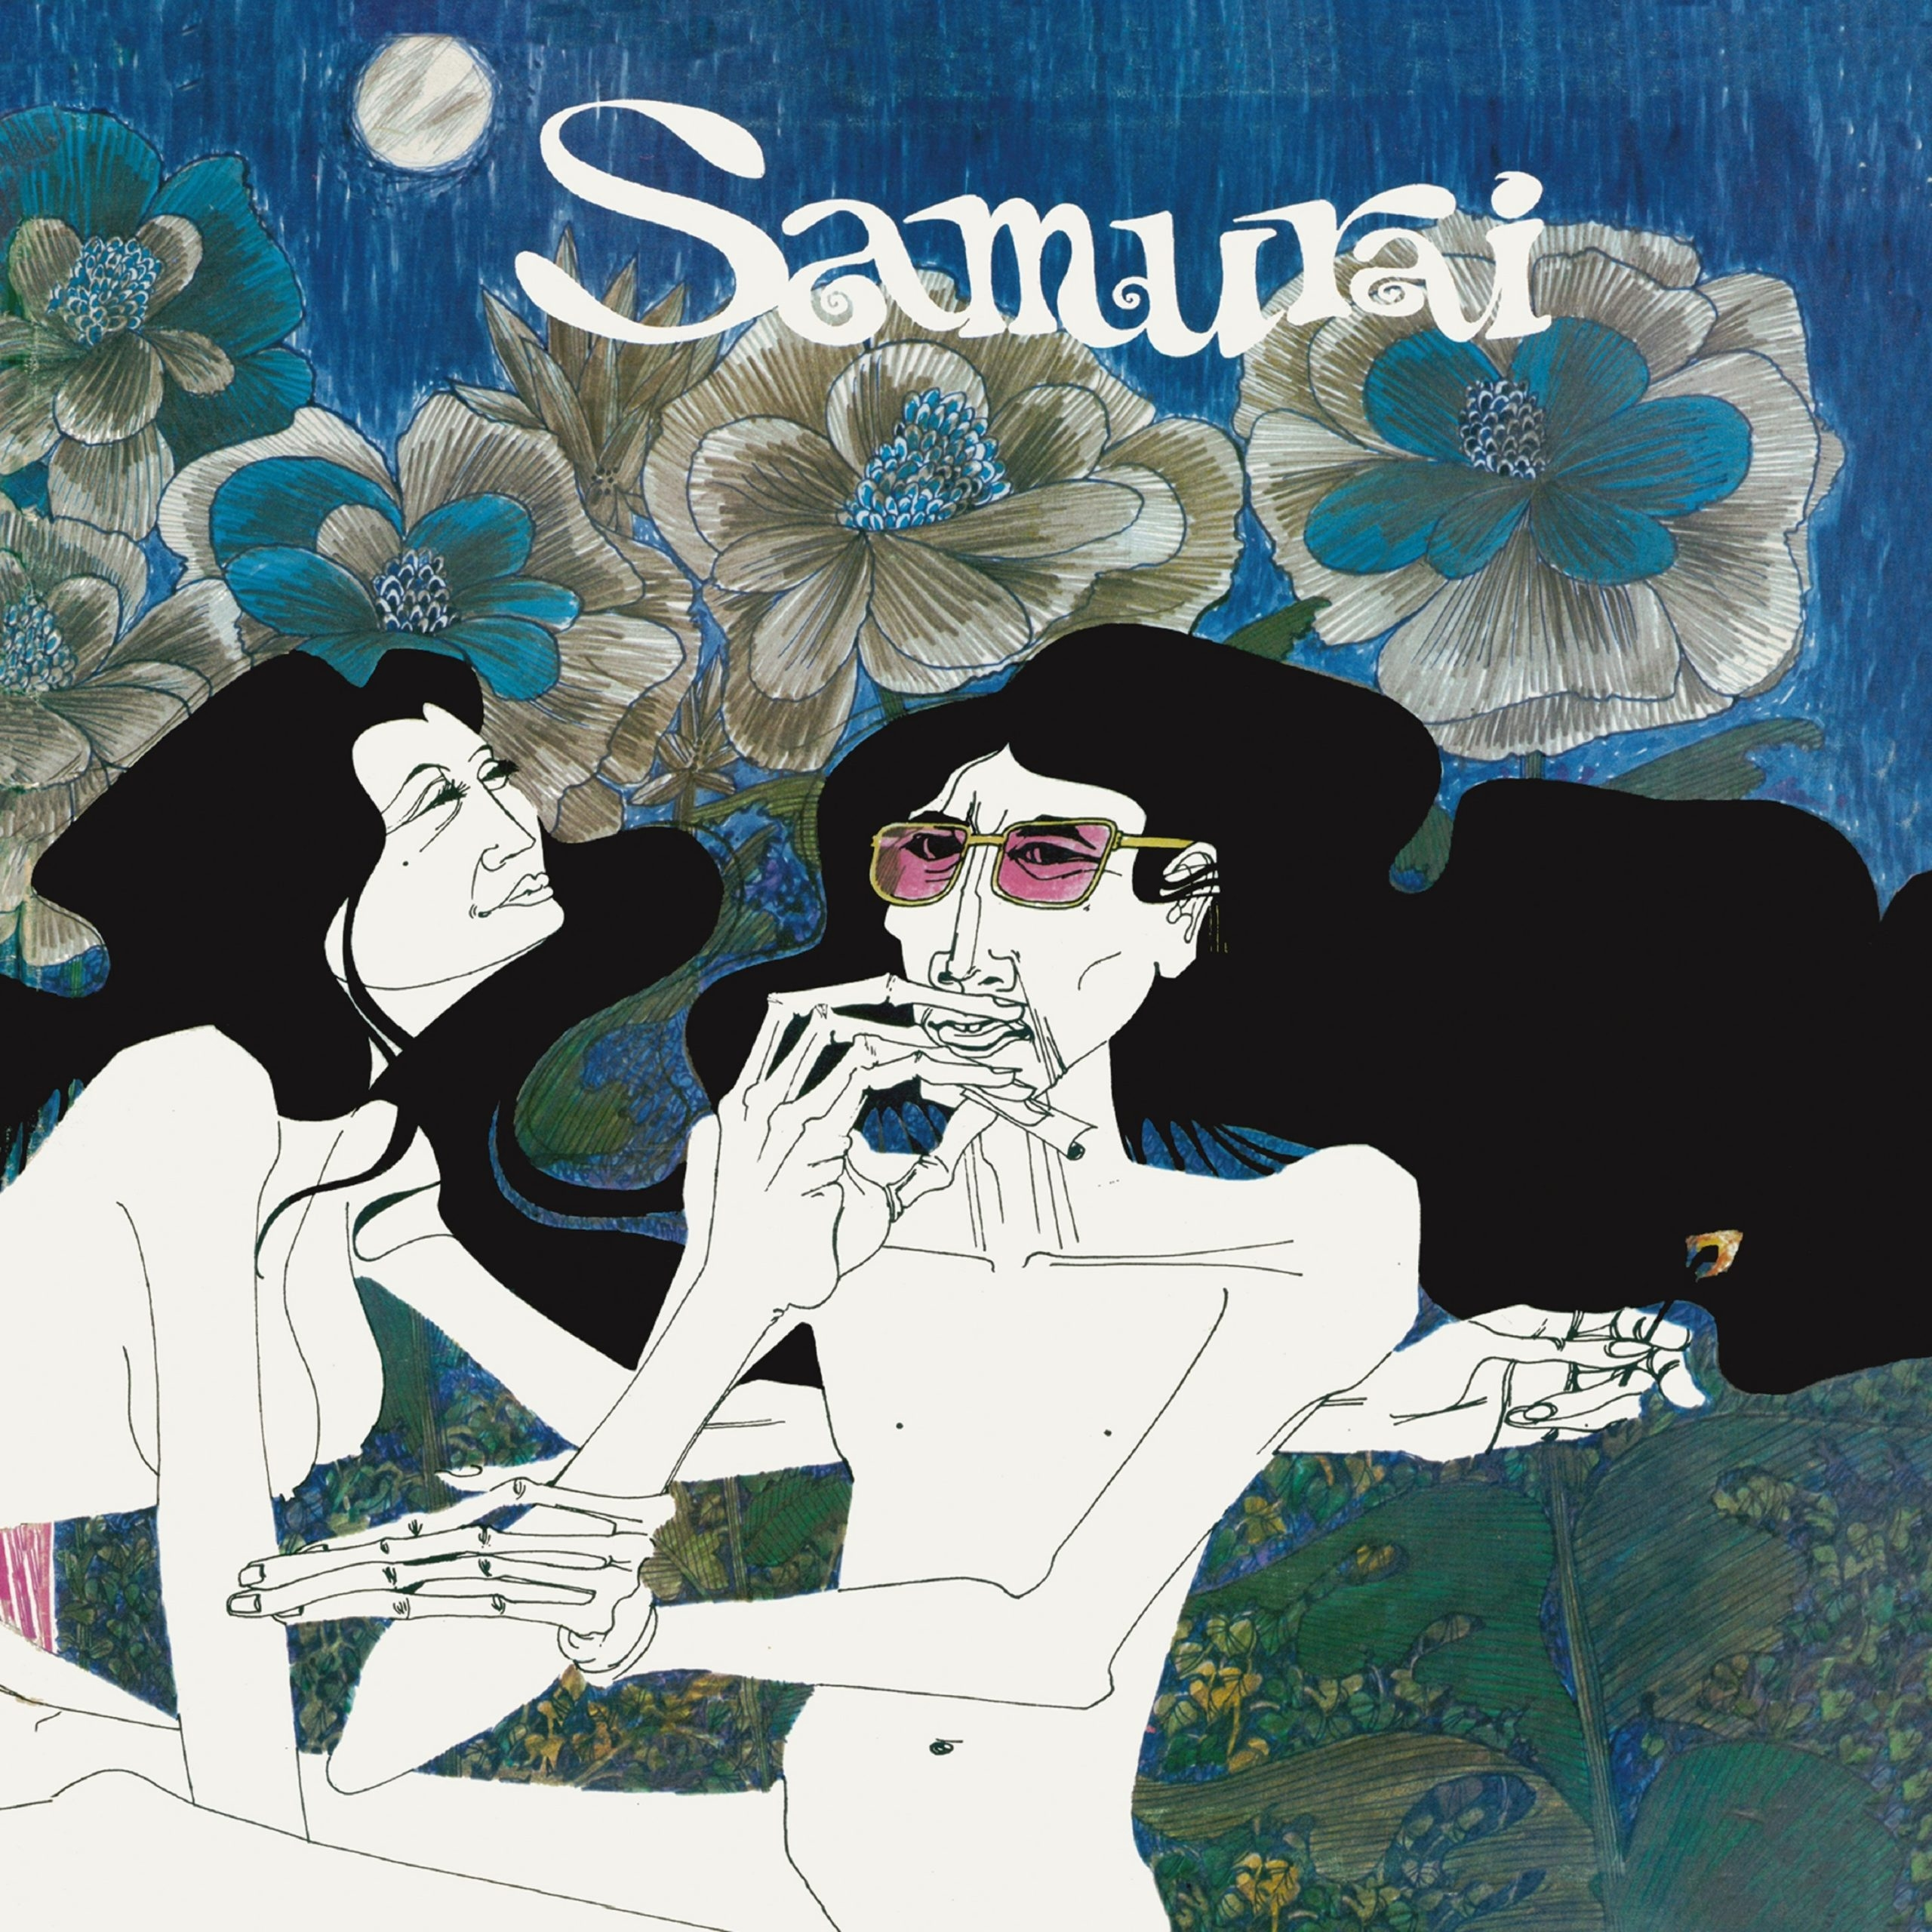 Samurai – Remastered, Expanded Edition